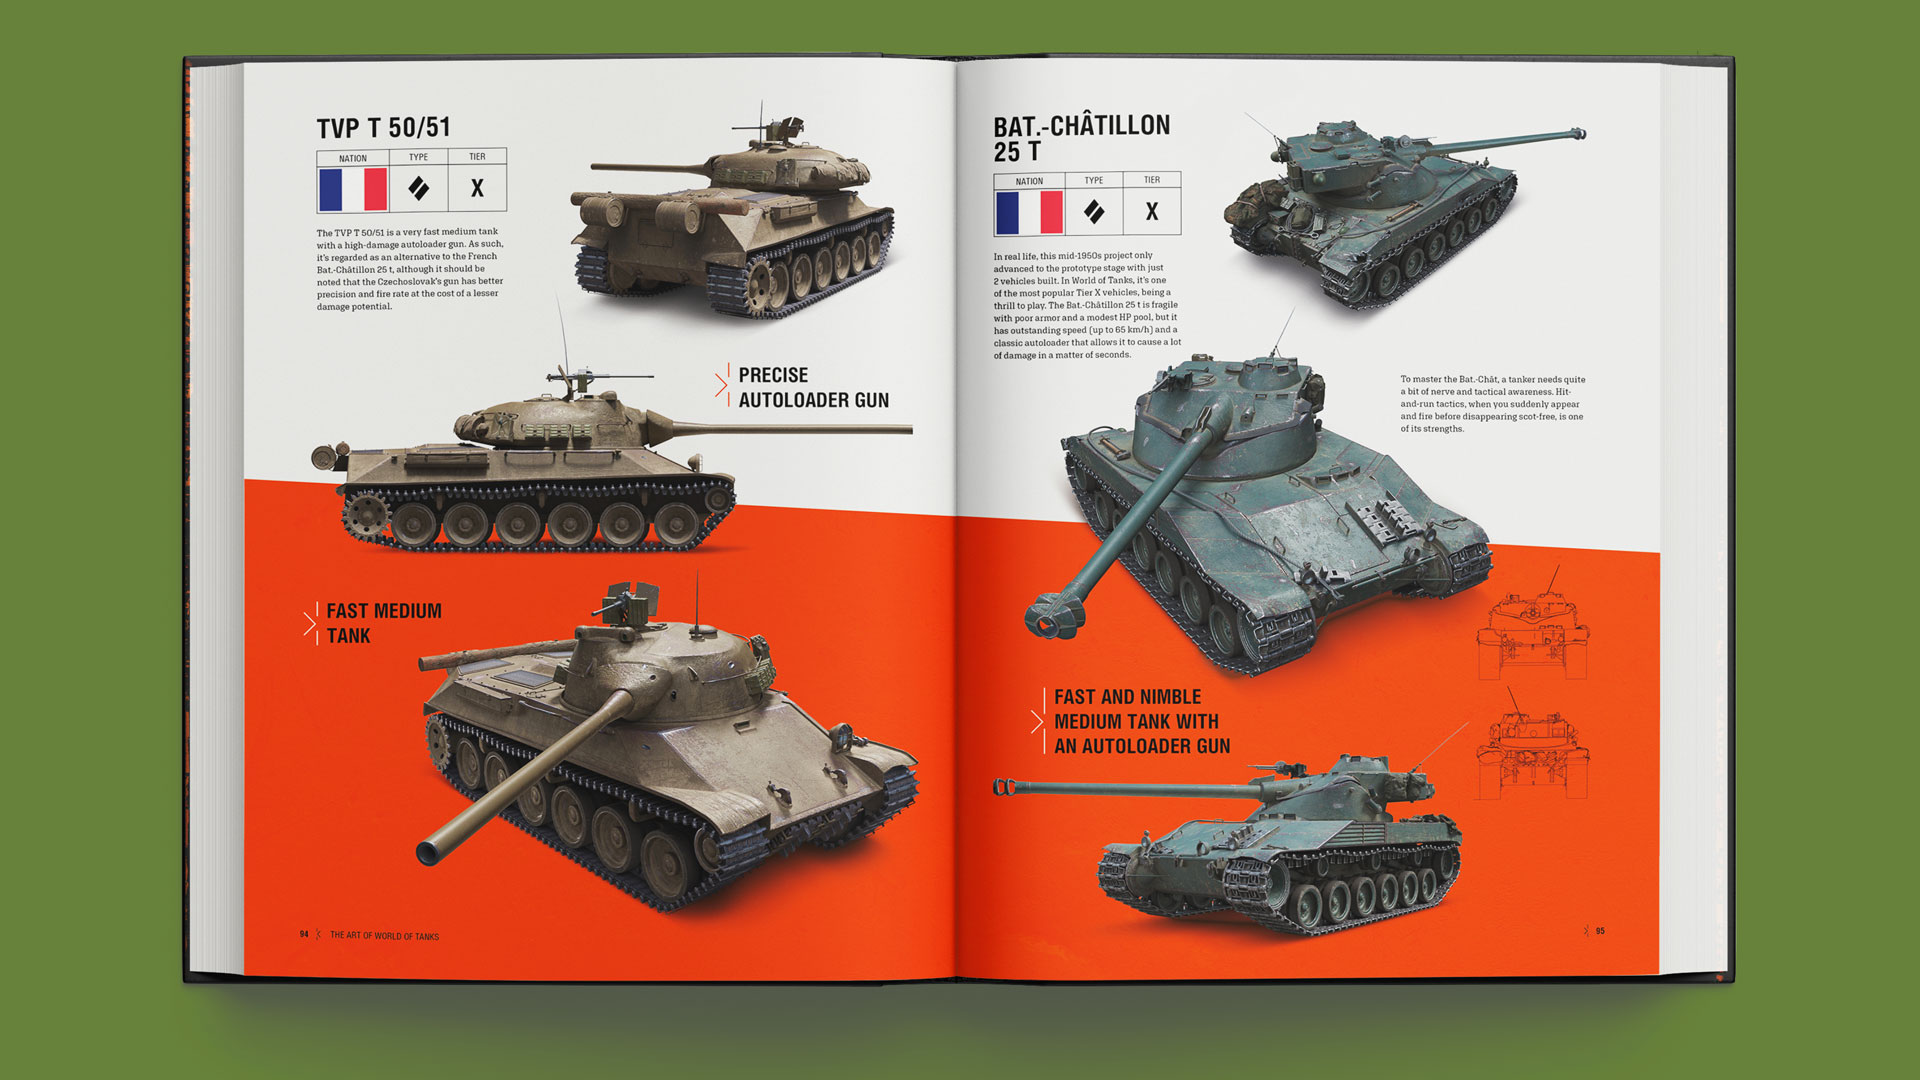 Image from official WoT book